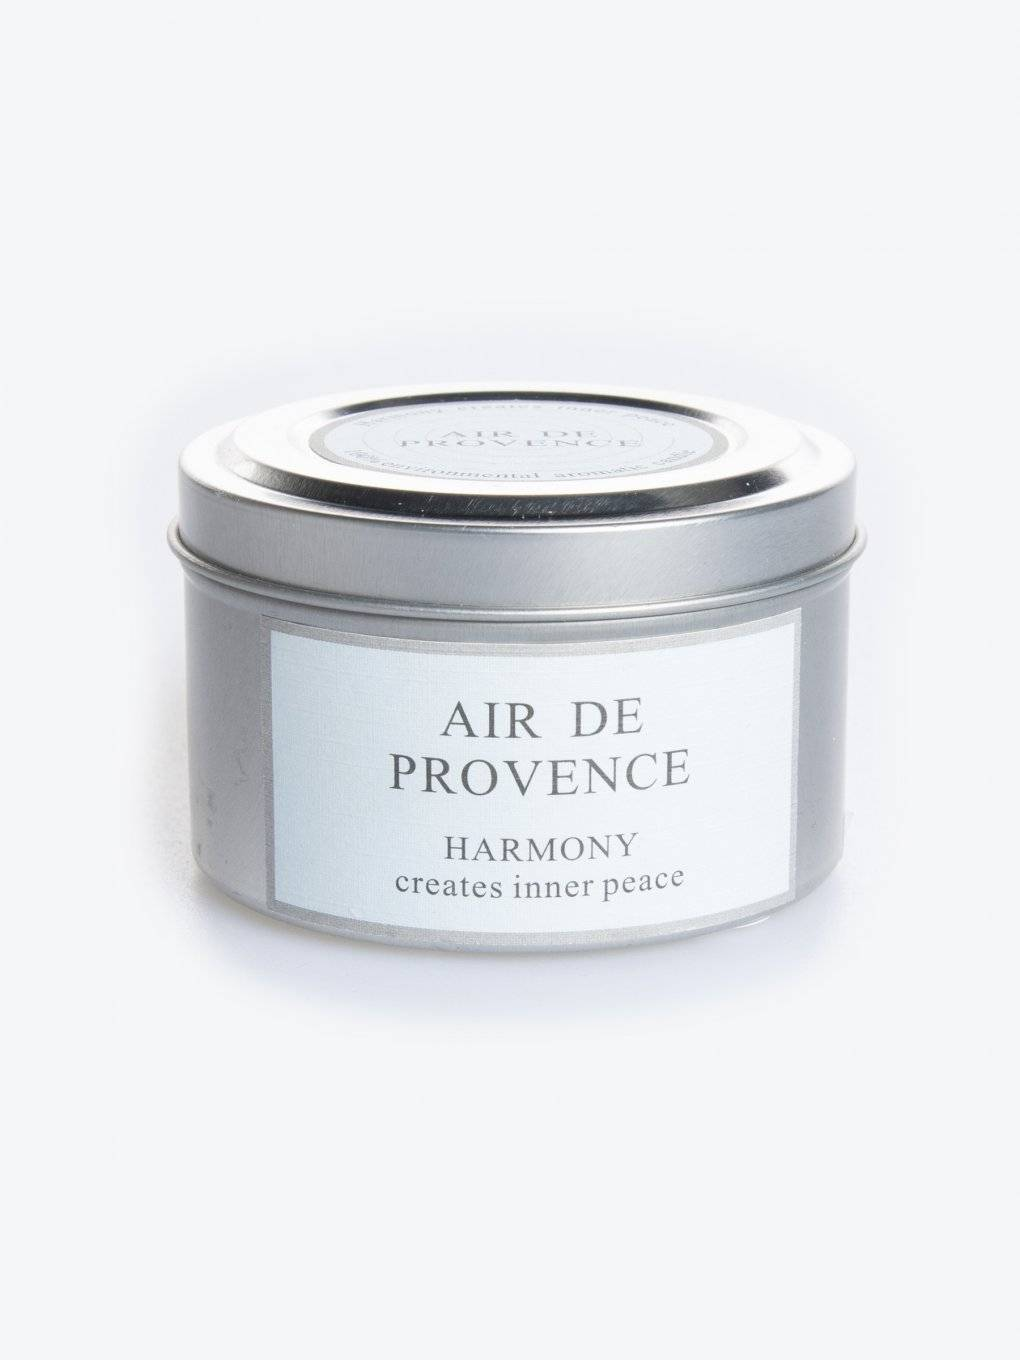 Air de provence scented tin candle